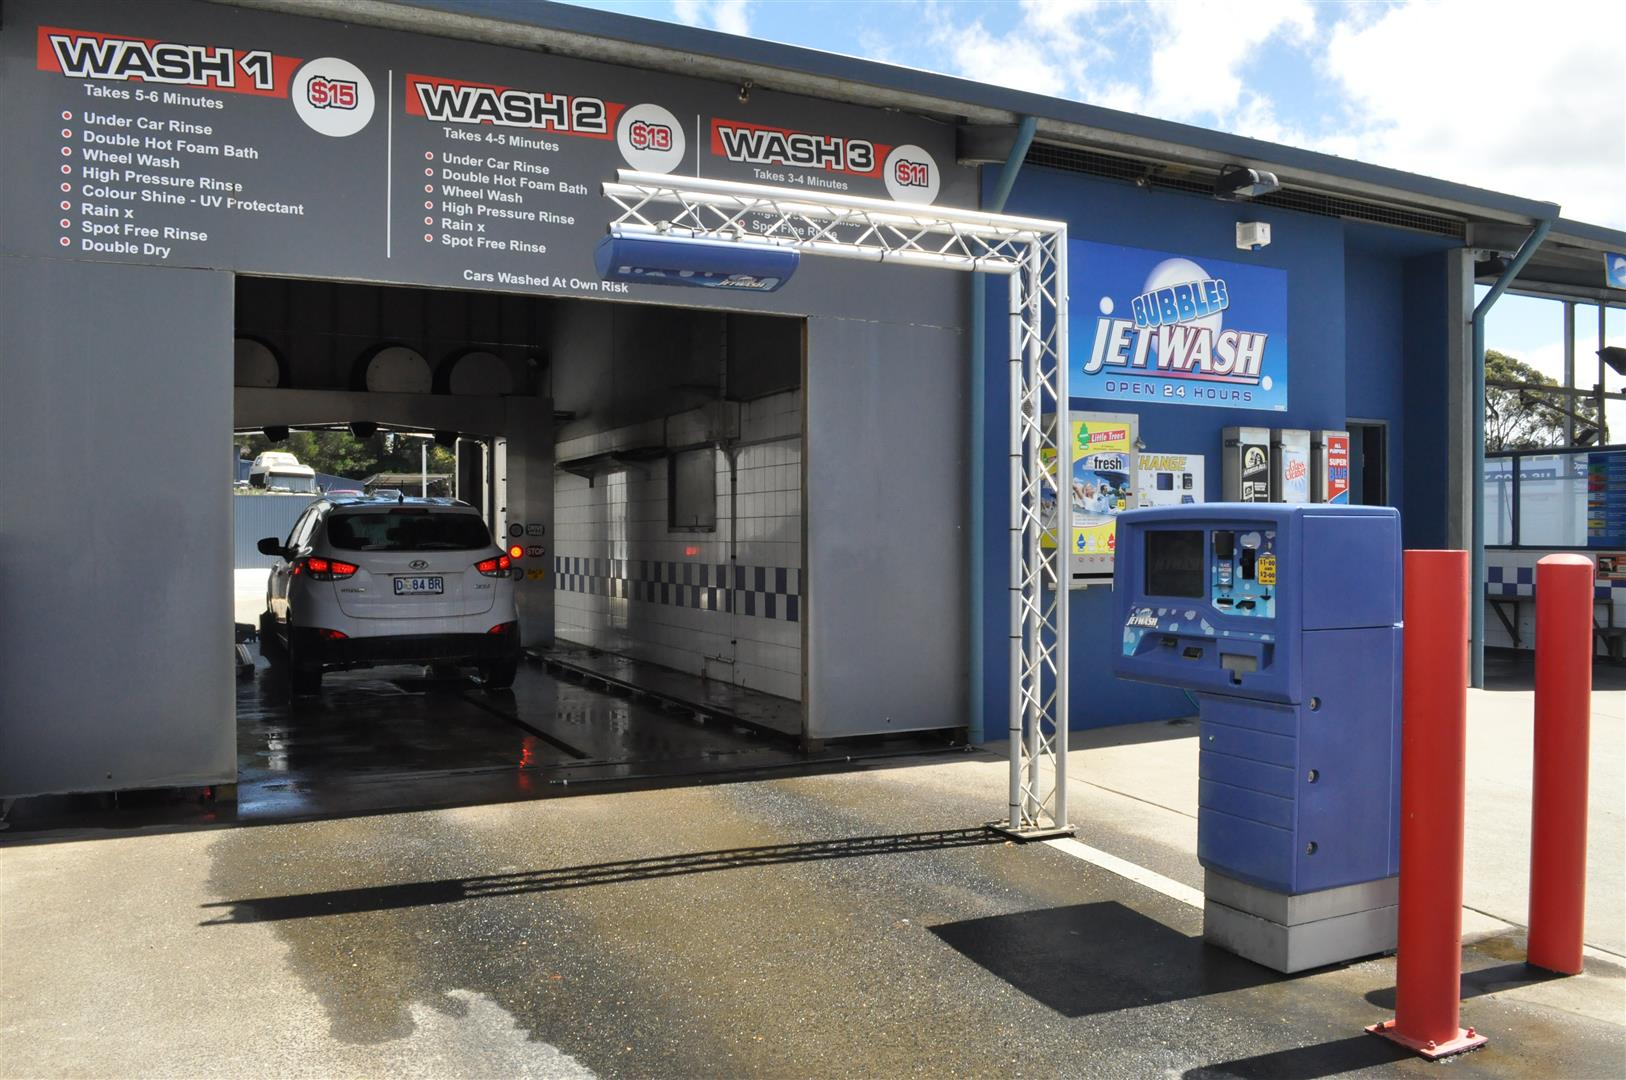 Bubbles jetwash kingston complete car wash and care facilities photo gallery of bubbles jetwash kingston tasmania 4 7 auto car wash self solutioingenieria Images